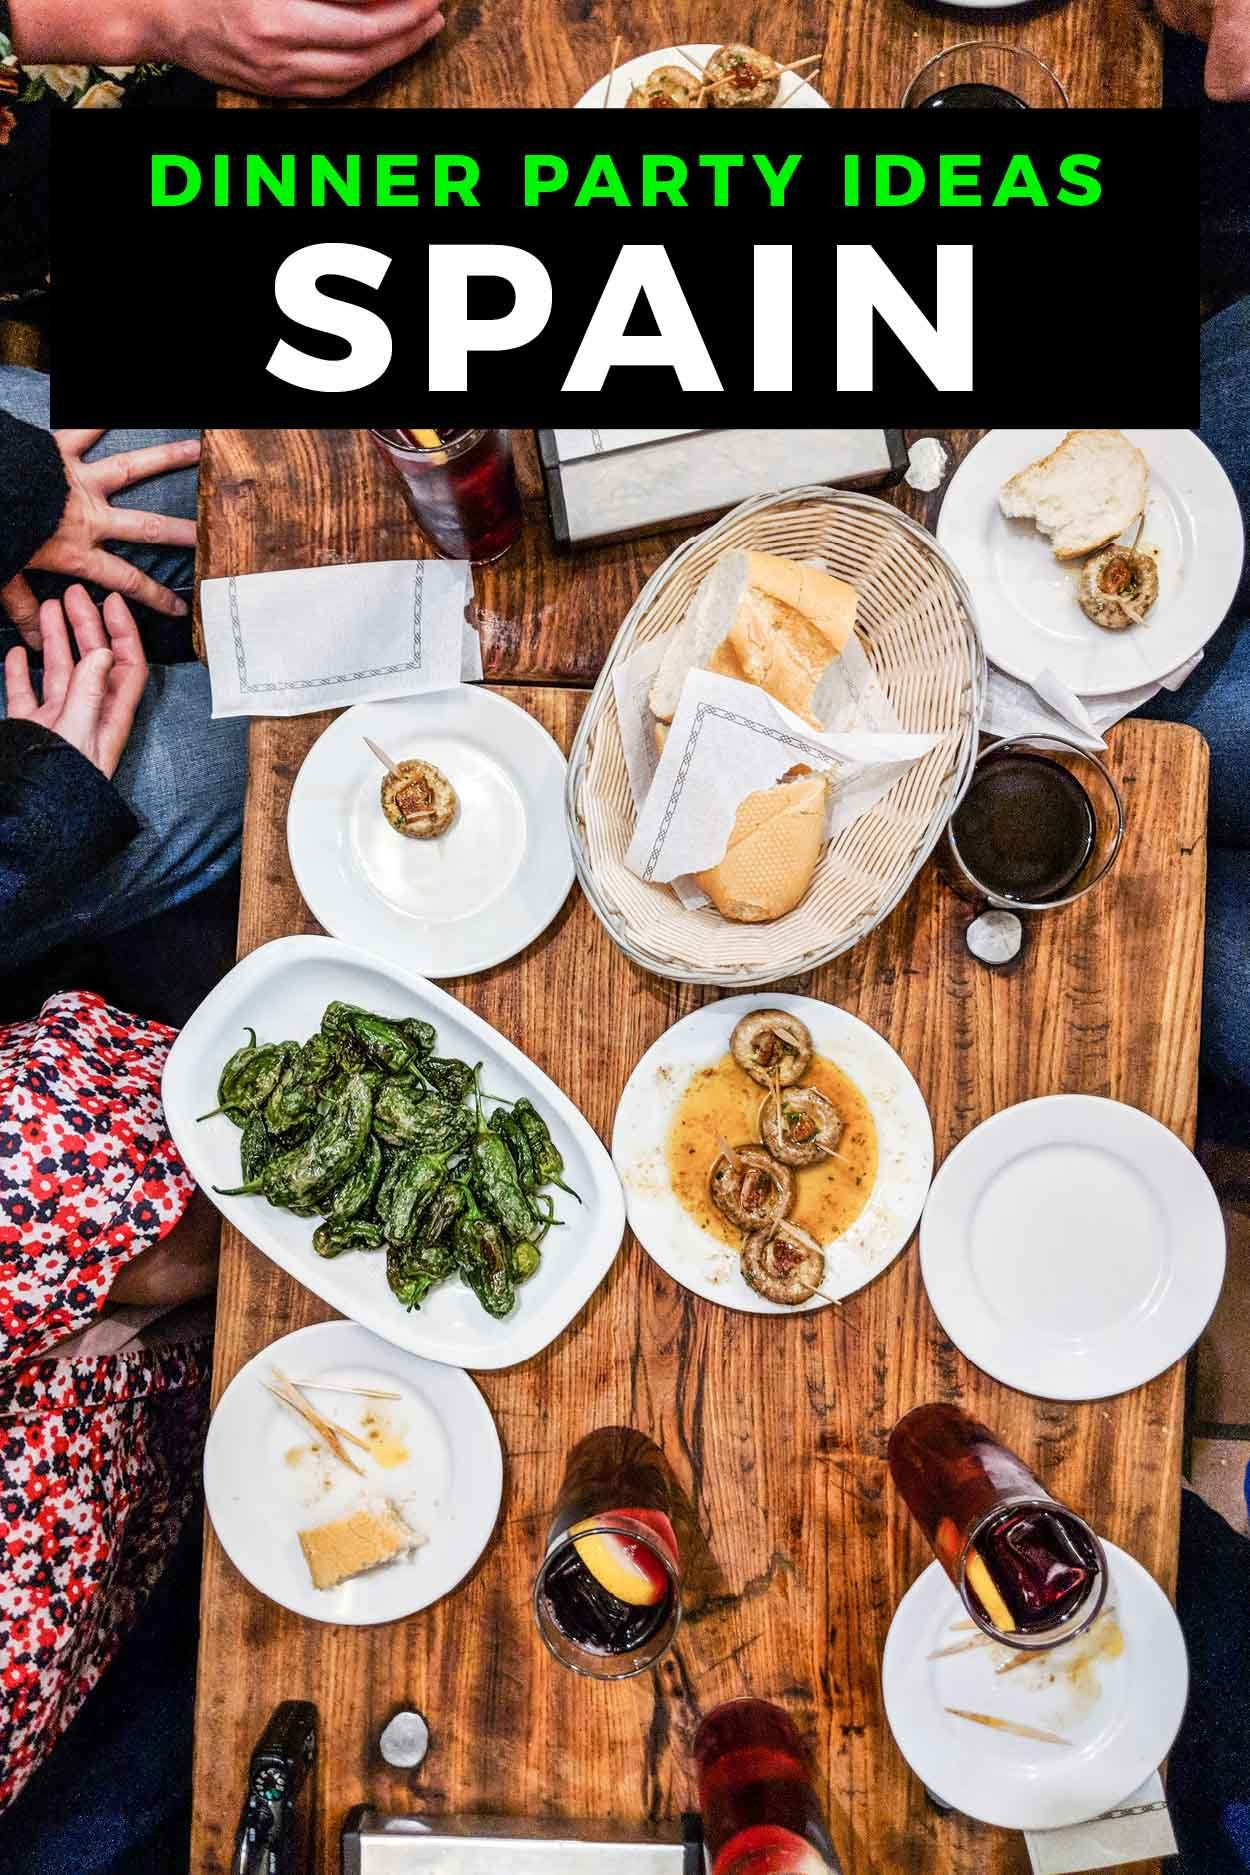 How to Host a Dinner Party with Spanish Wine and Food